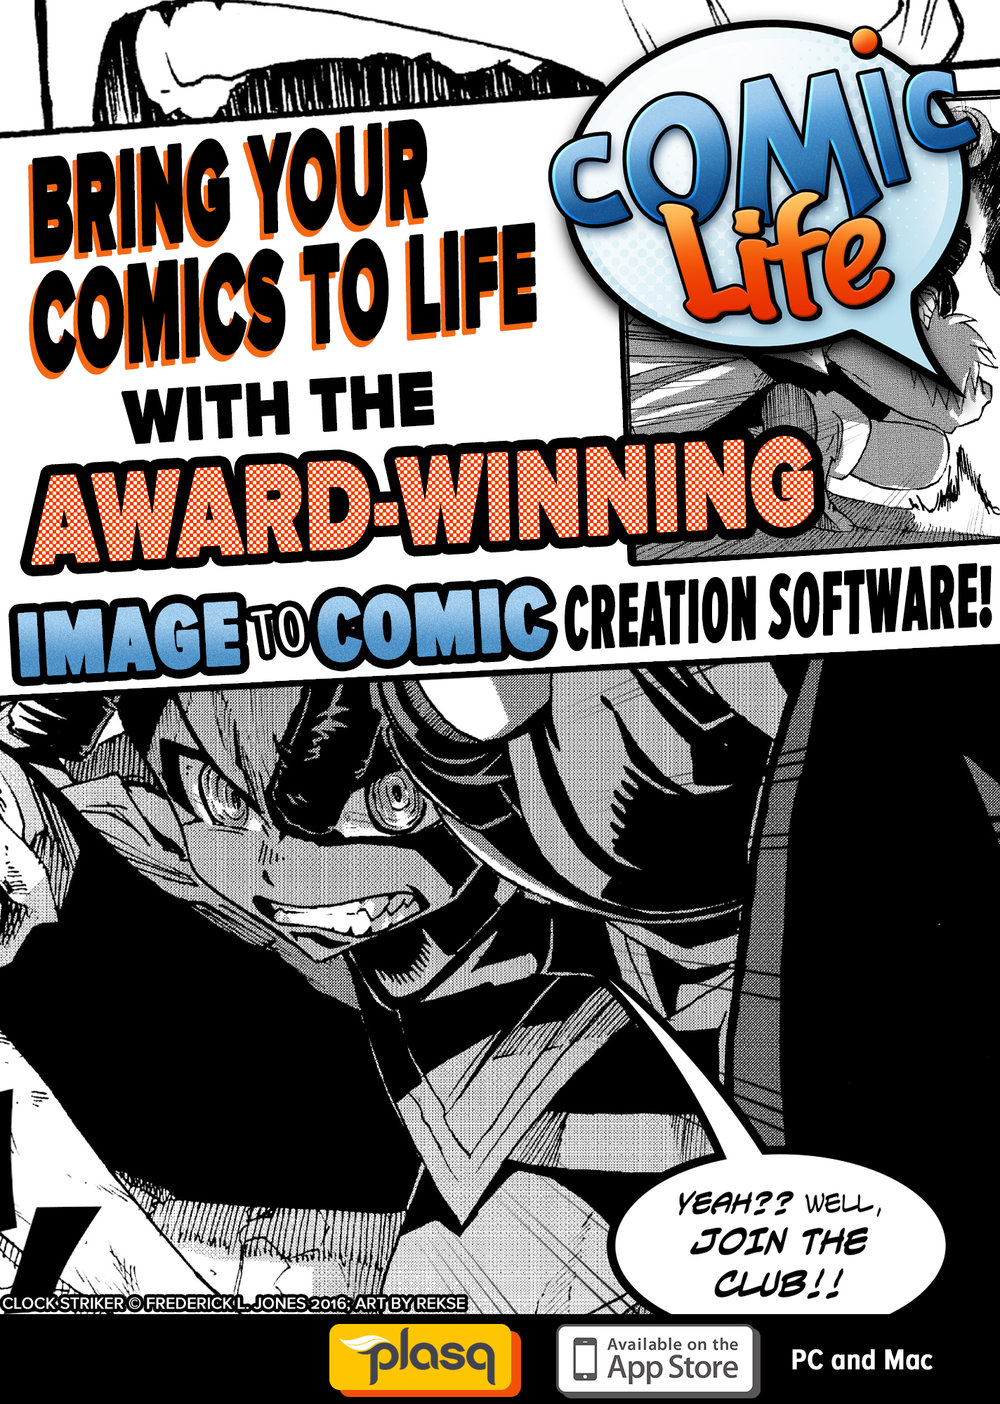 CLOCK STRIKER not only uses the COMIC LIFE app for lettering but stars in this ad.